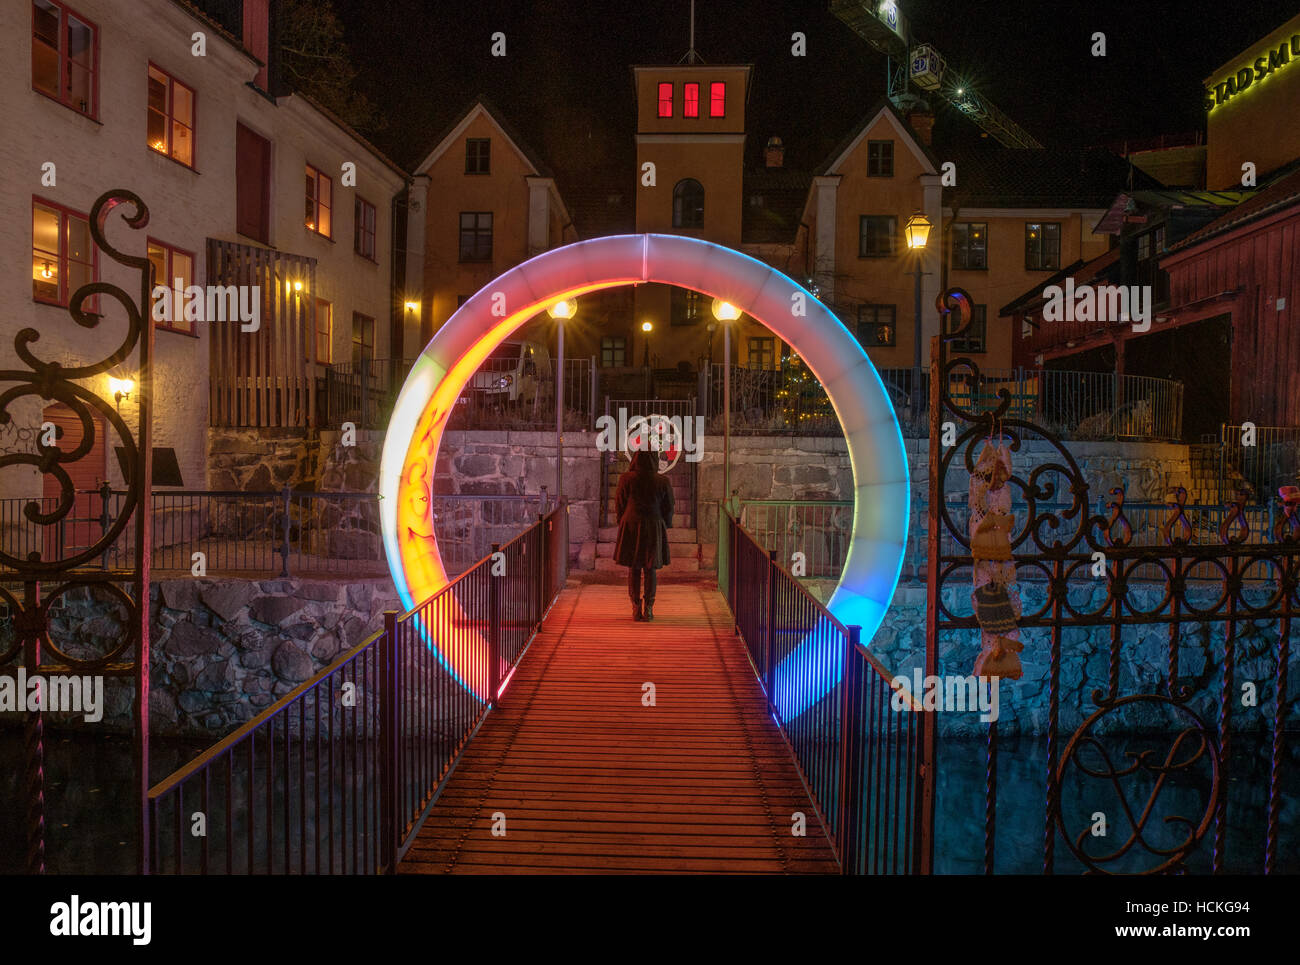 Norrköping Light festival 2016-2017 in the unique industrial landscape in the city center of Norrkoping. - Stock Image